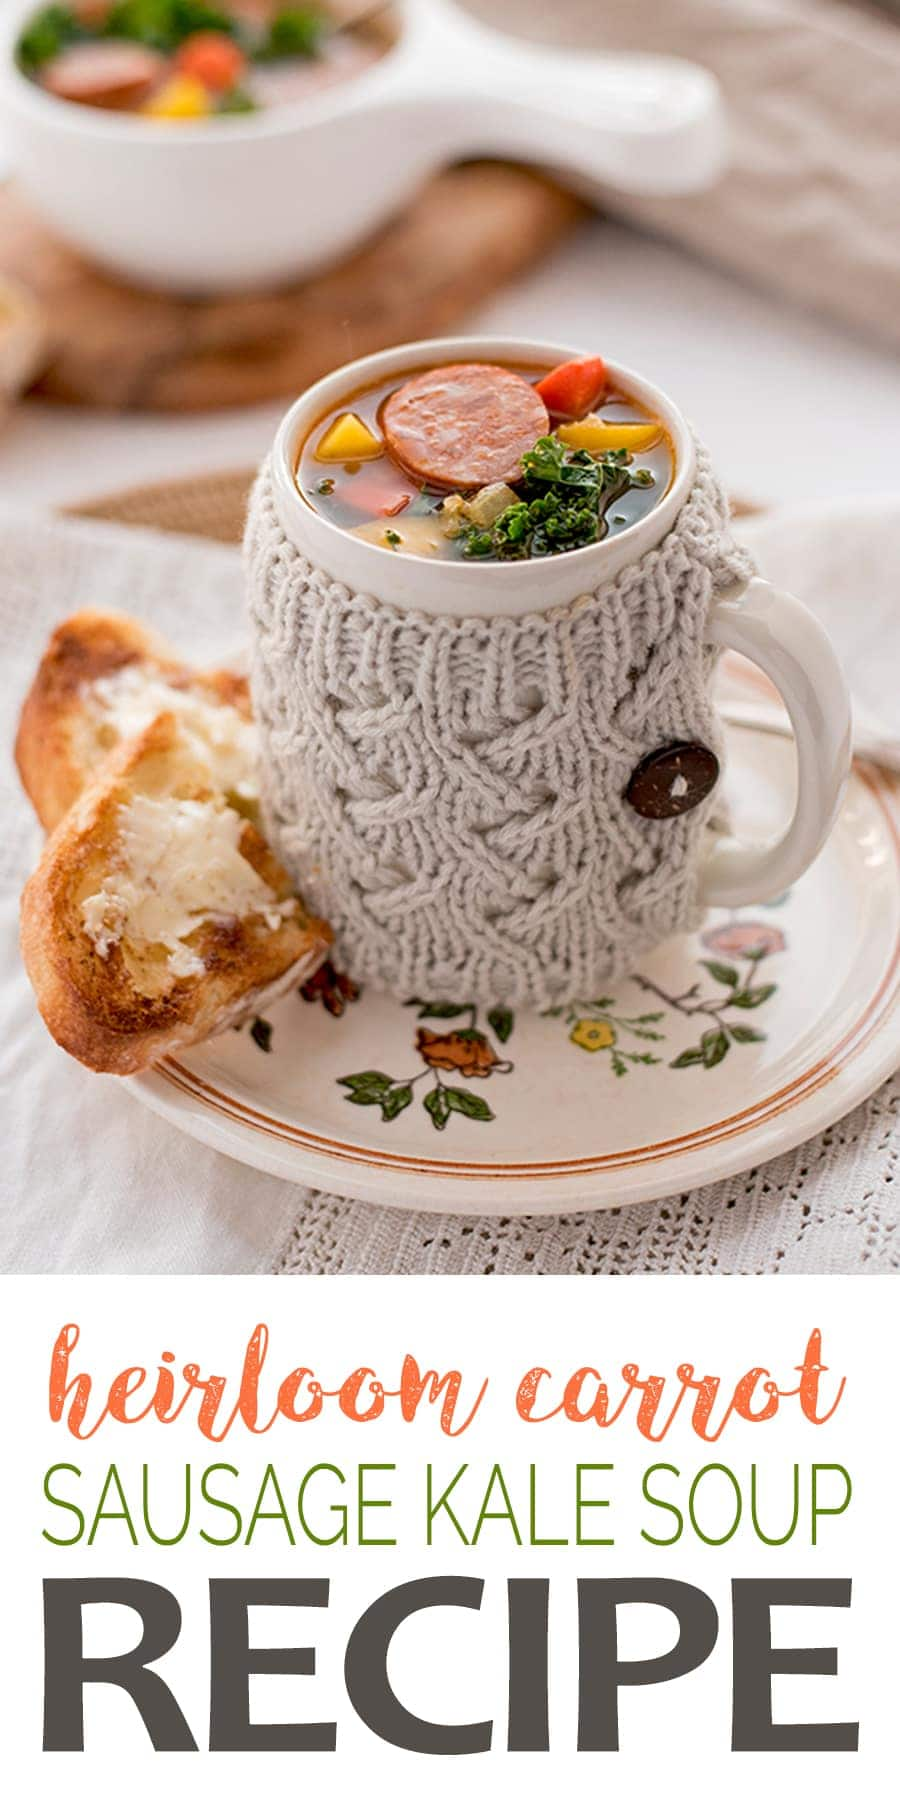 Sausage Kale Soup - Sausage Kale Soup with Heirloom Carrots